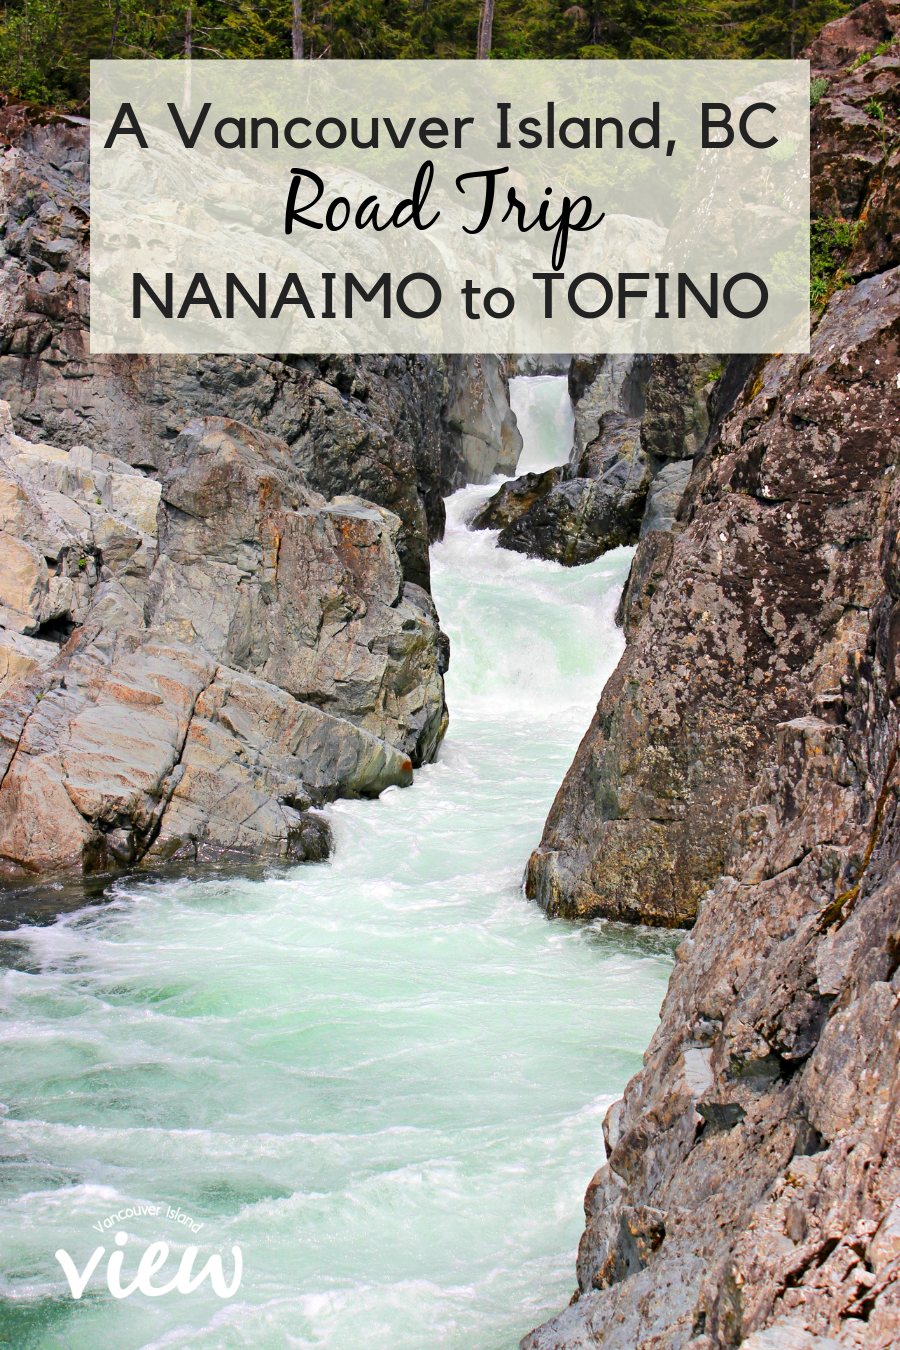 Are you heading to the West Coast of British Columbia? This Nanaimo to Tofino Vancouver Island road trip will give you all the must-see stops along the way.  #roadtrip #vancouverisland #traveldestination #exploreBC #canada #trip